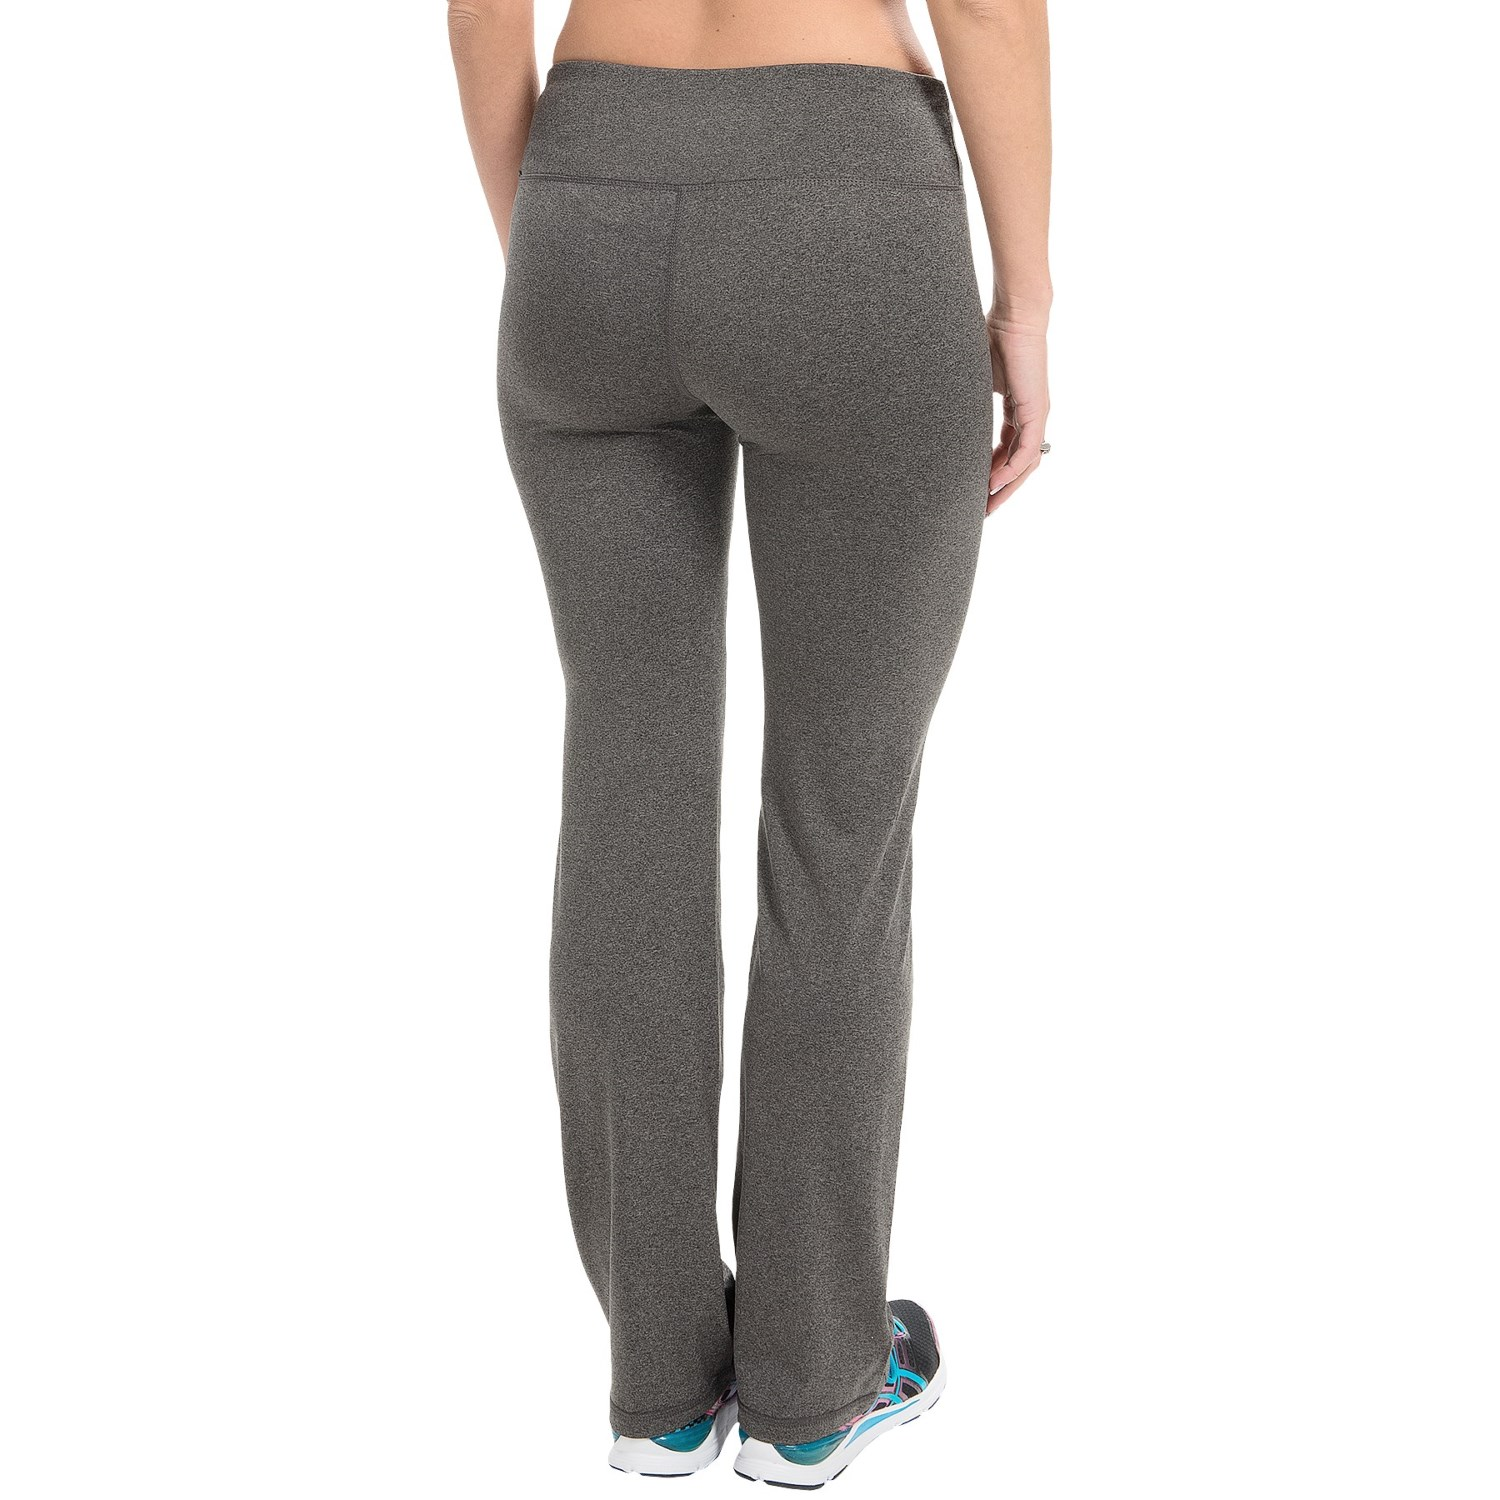 Head Classic Yoga Pants (For Women) - Save 50%